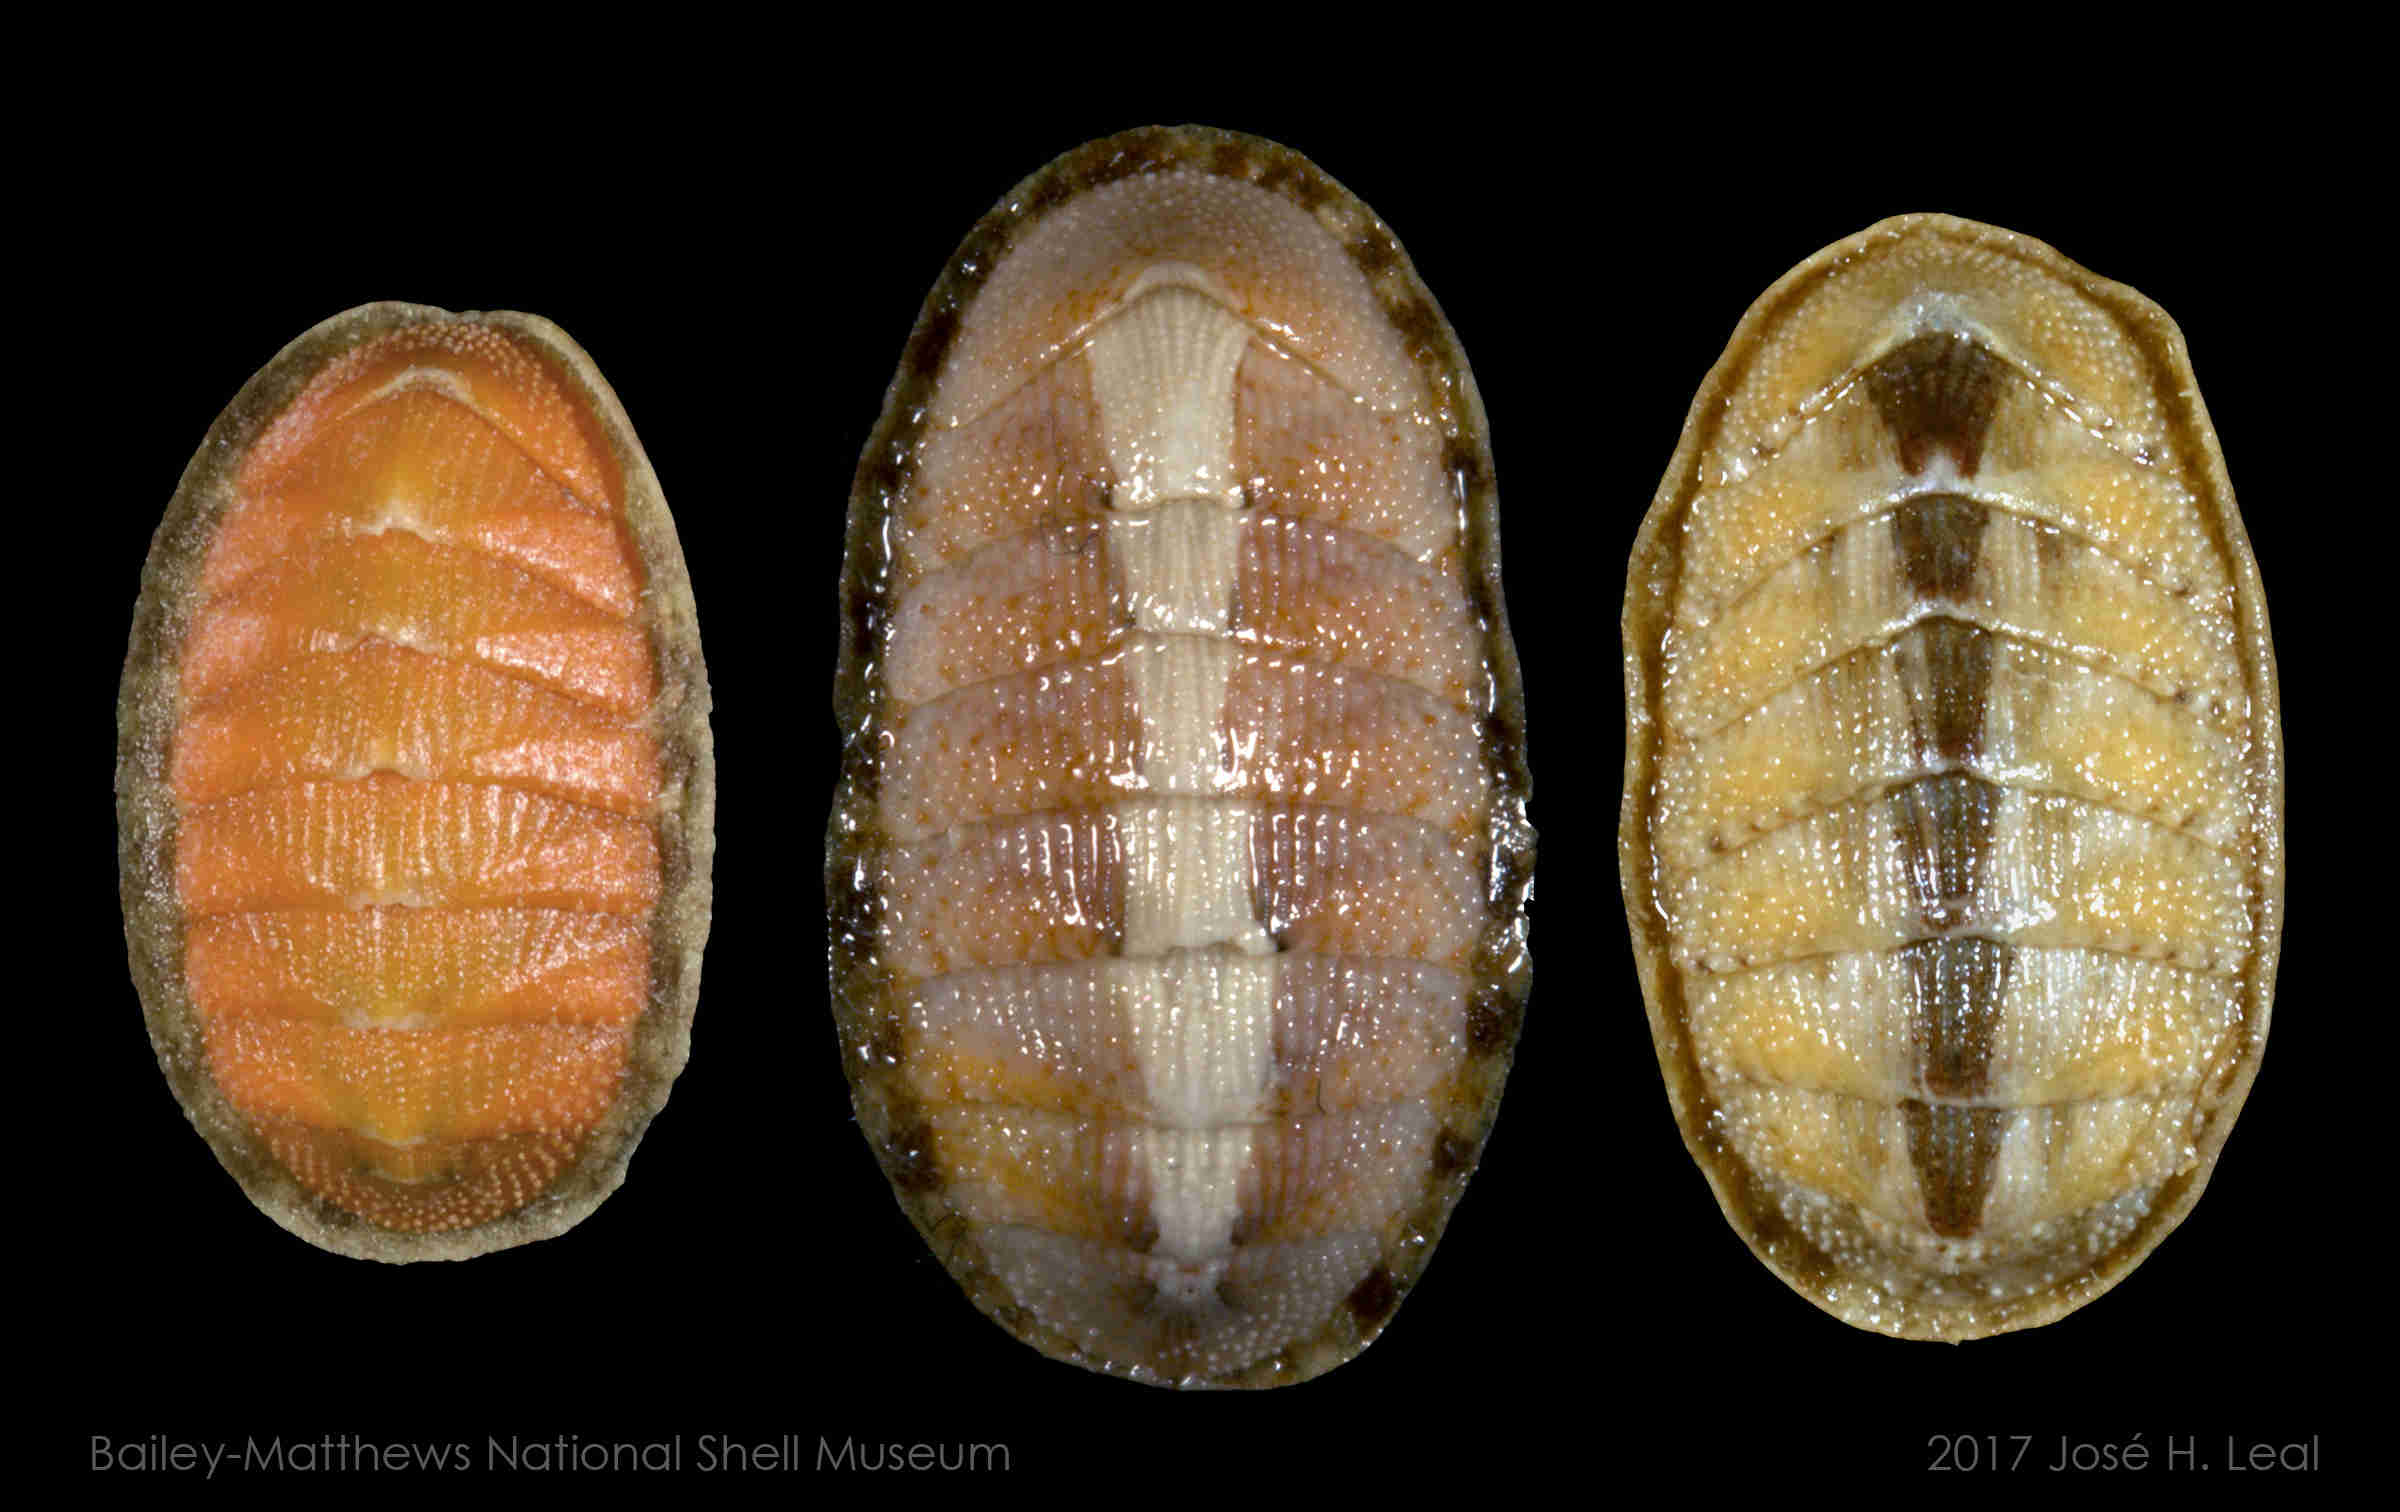 Eastern Beaded Chiton